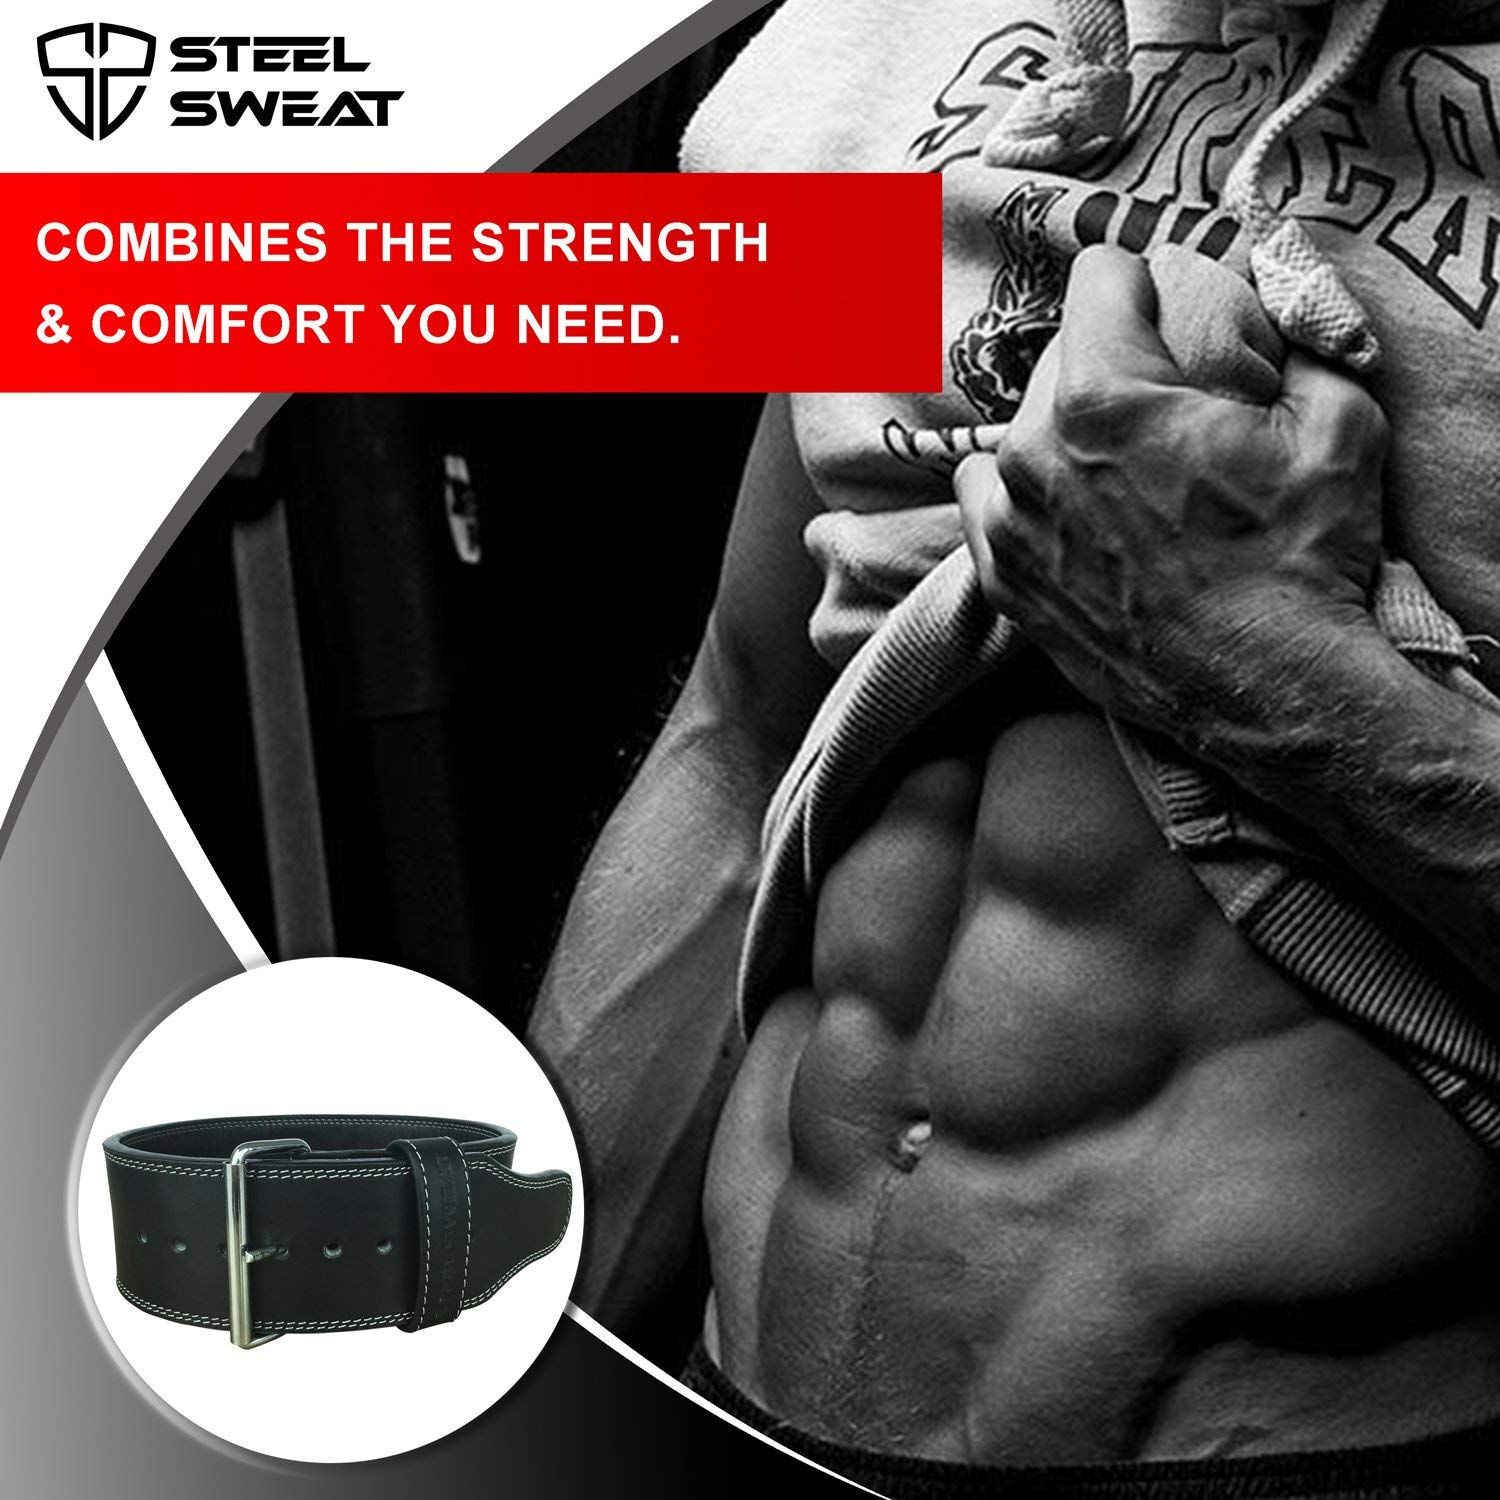 "Steel Sweat Powerlifting Belt for Weight Lifting - 4"" Wide by 10mm Thick - Single Prong Heavy Duty Adjustable Weightlifting Belt, High Grade Leather - Bolt Black XXL"